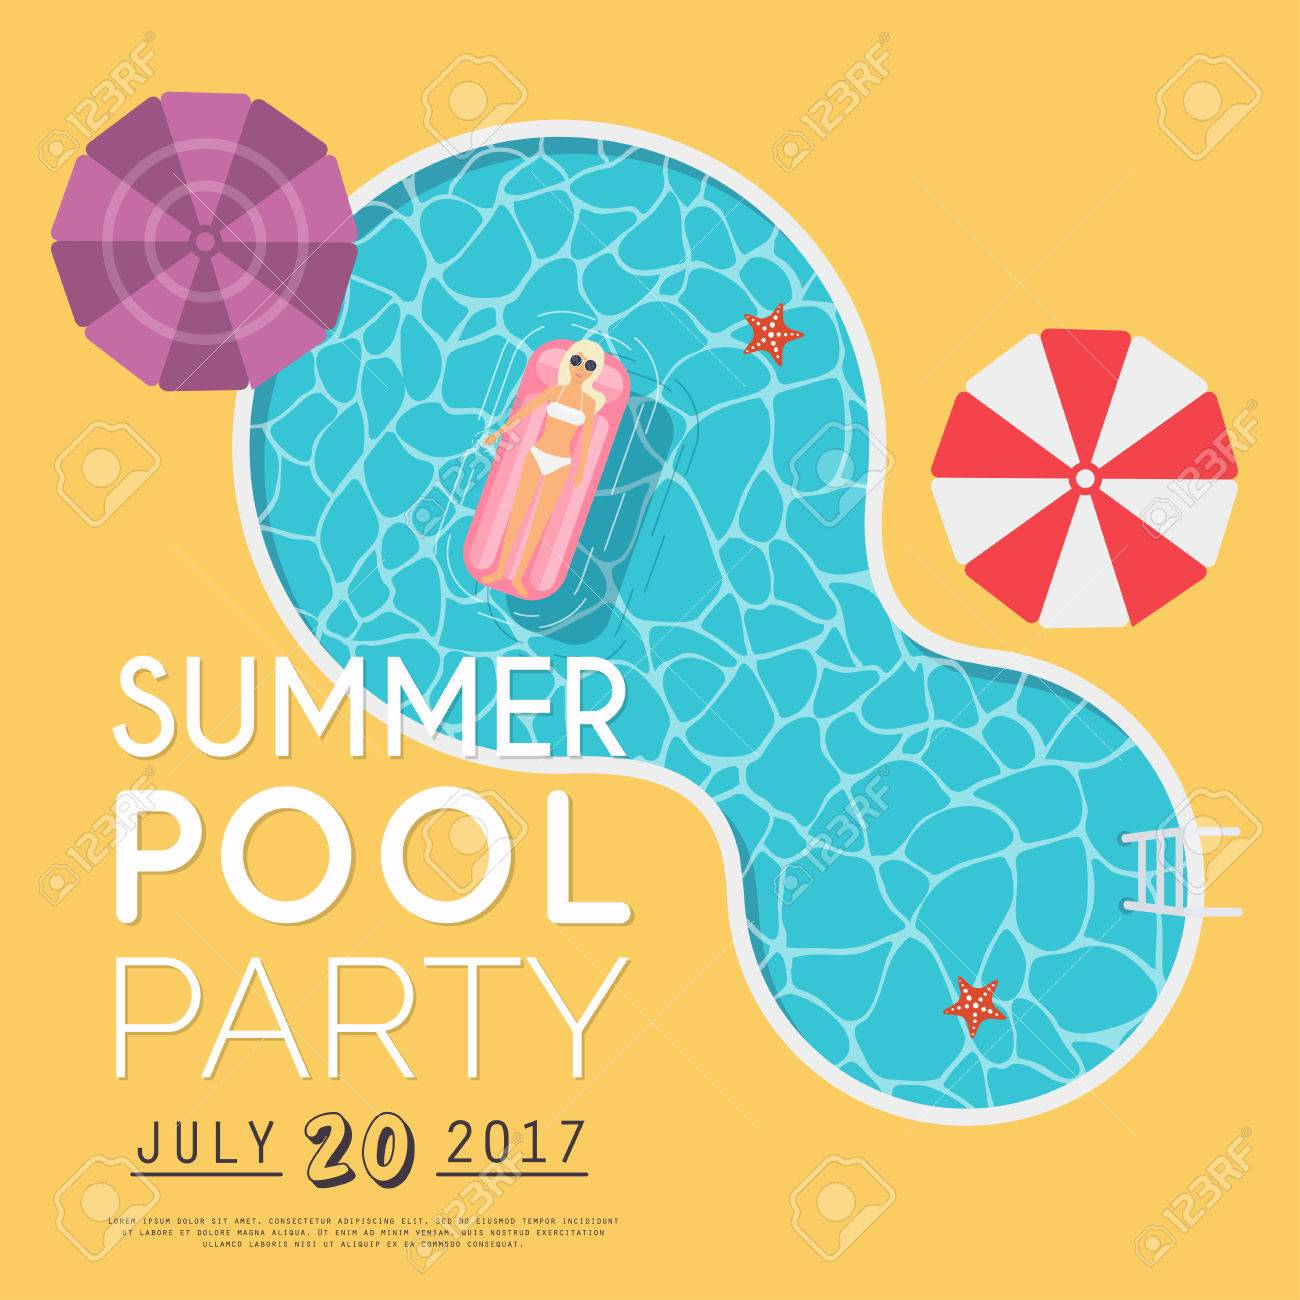 Summer pool party invitation flyer or banner template flat summer pool party invitation flyer or banner template flat design elements minimalist style stopboris Image collections